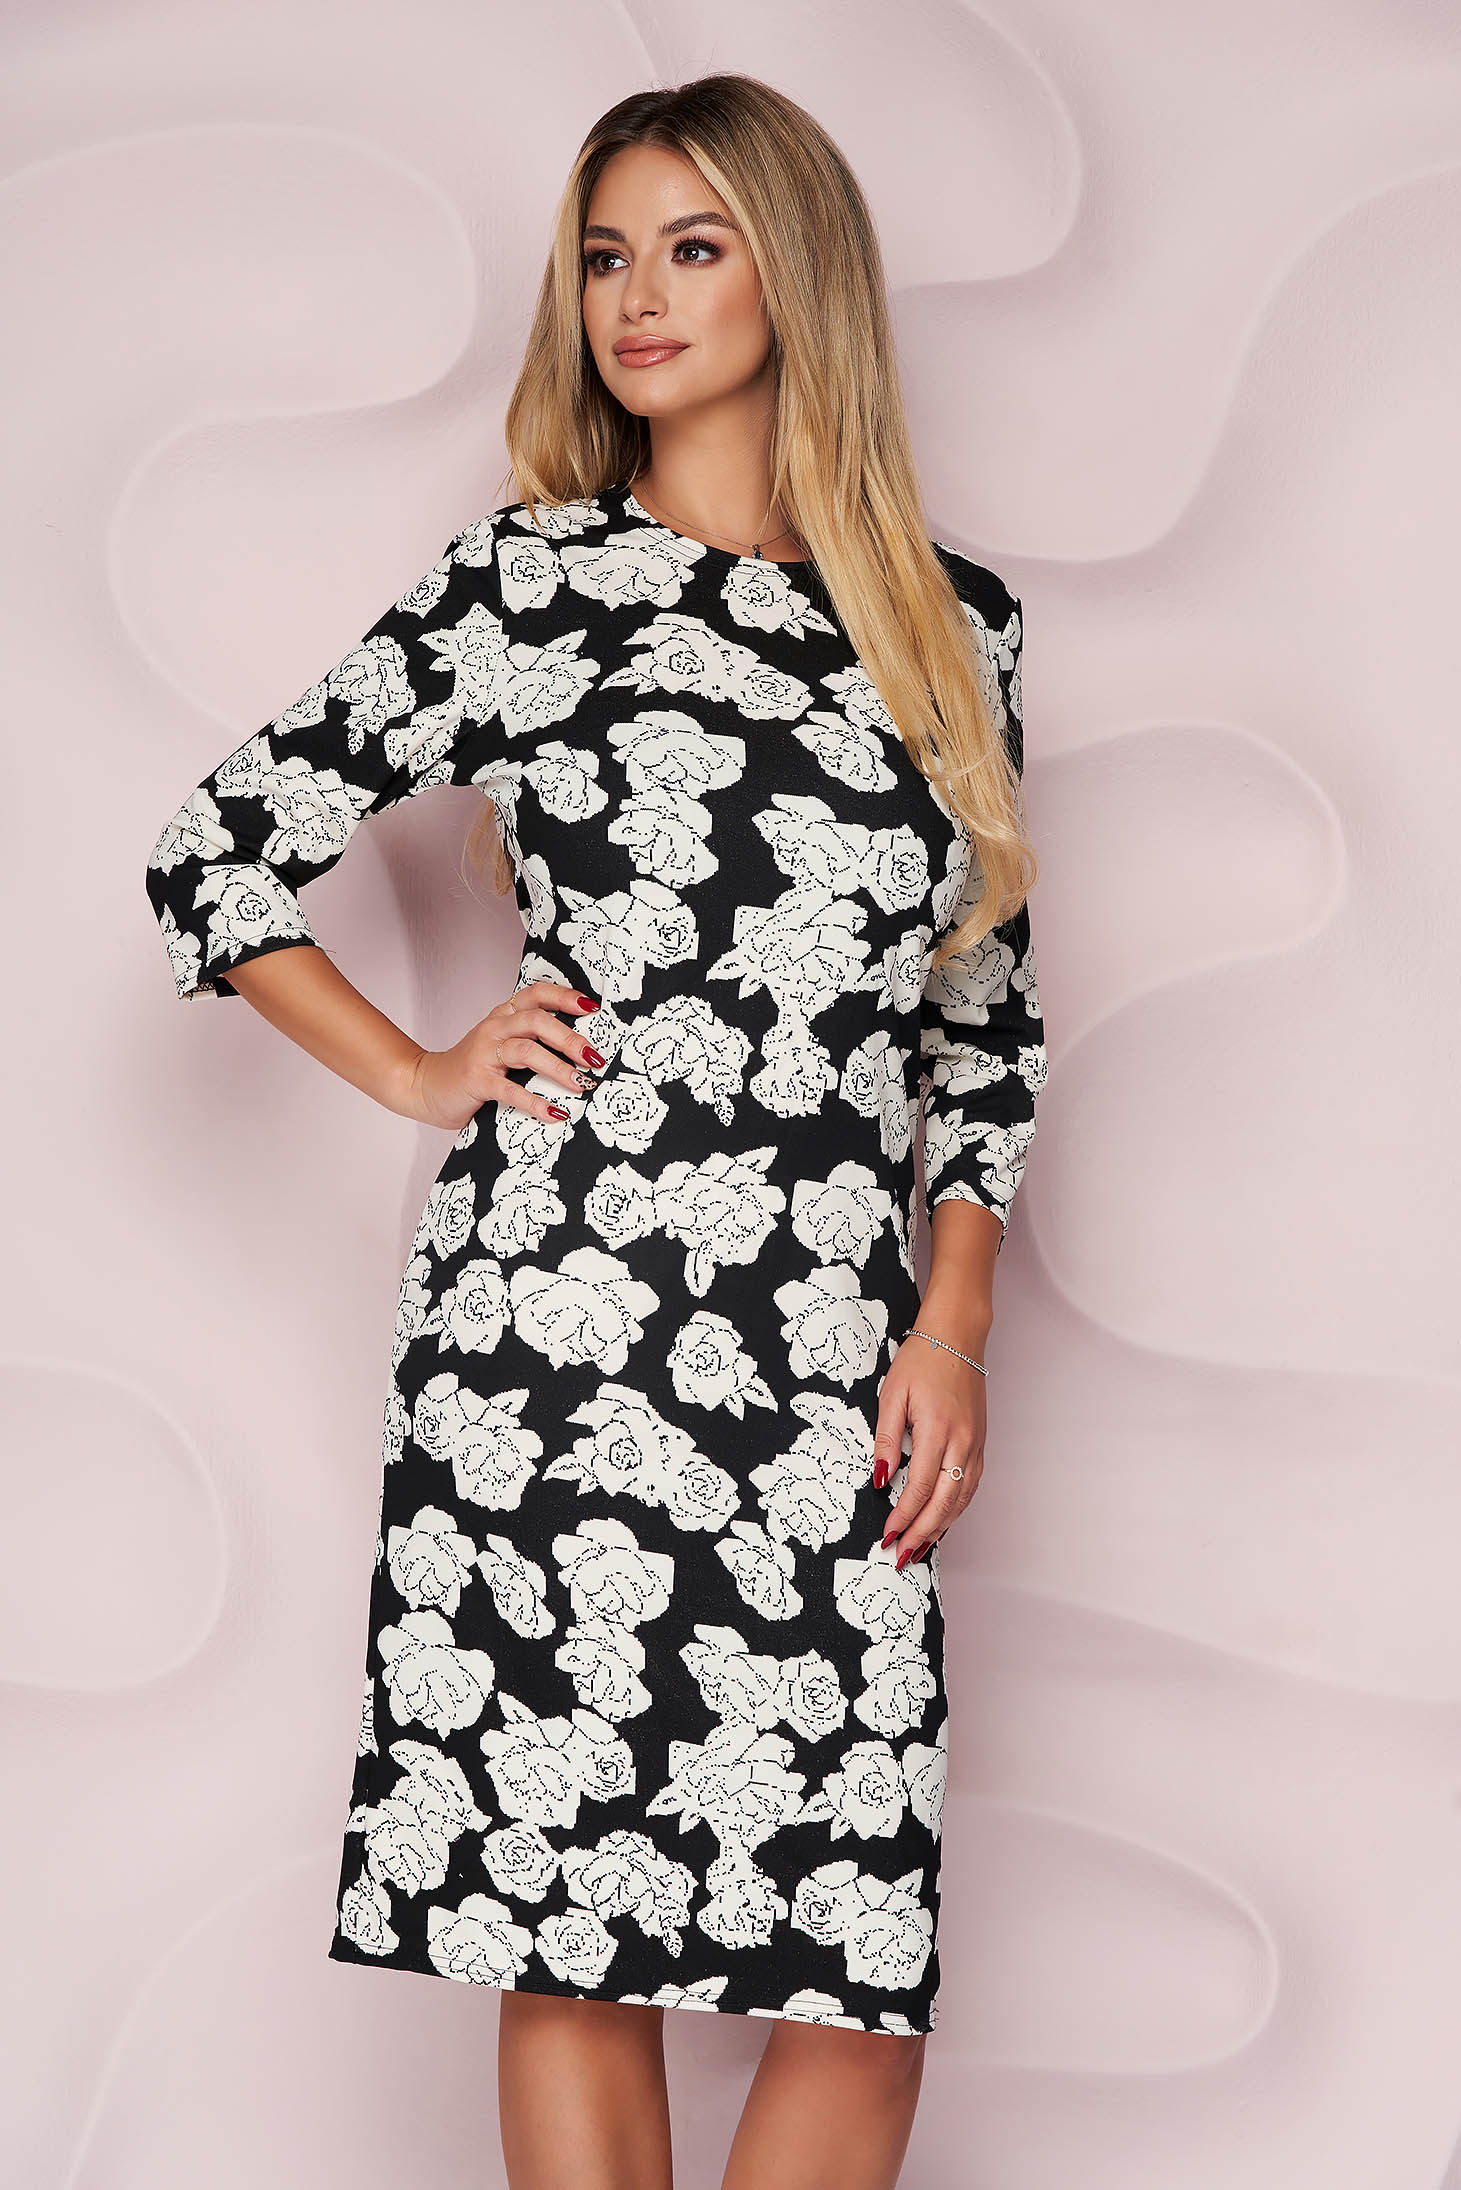 Dress office straight midi slightly elastic fabric with floral print light material